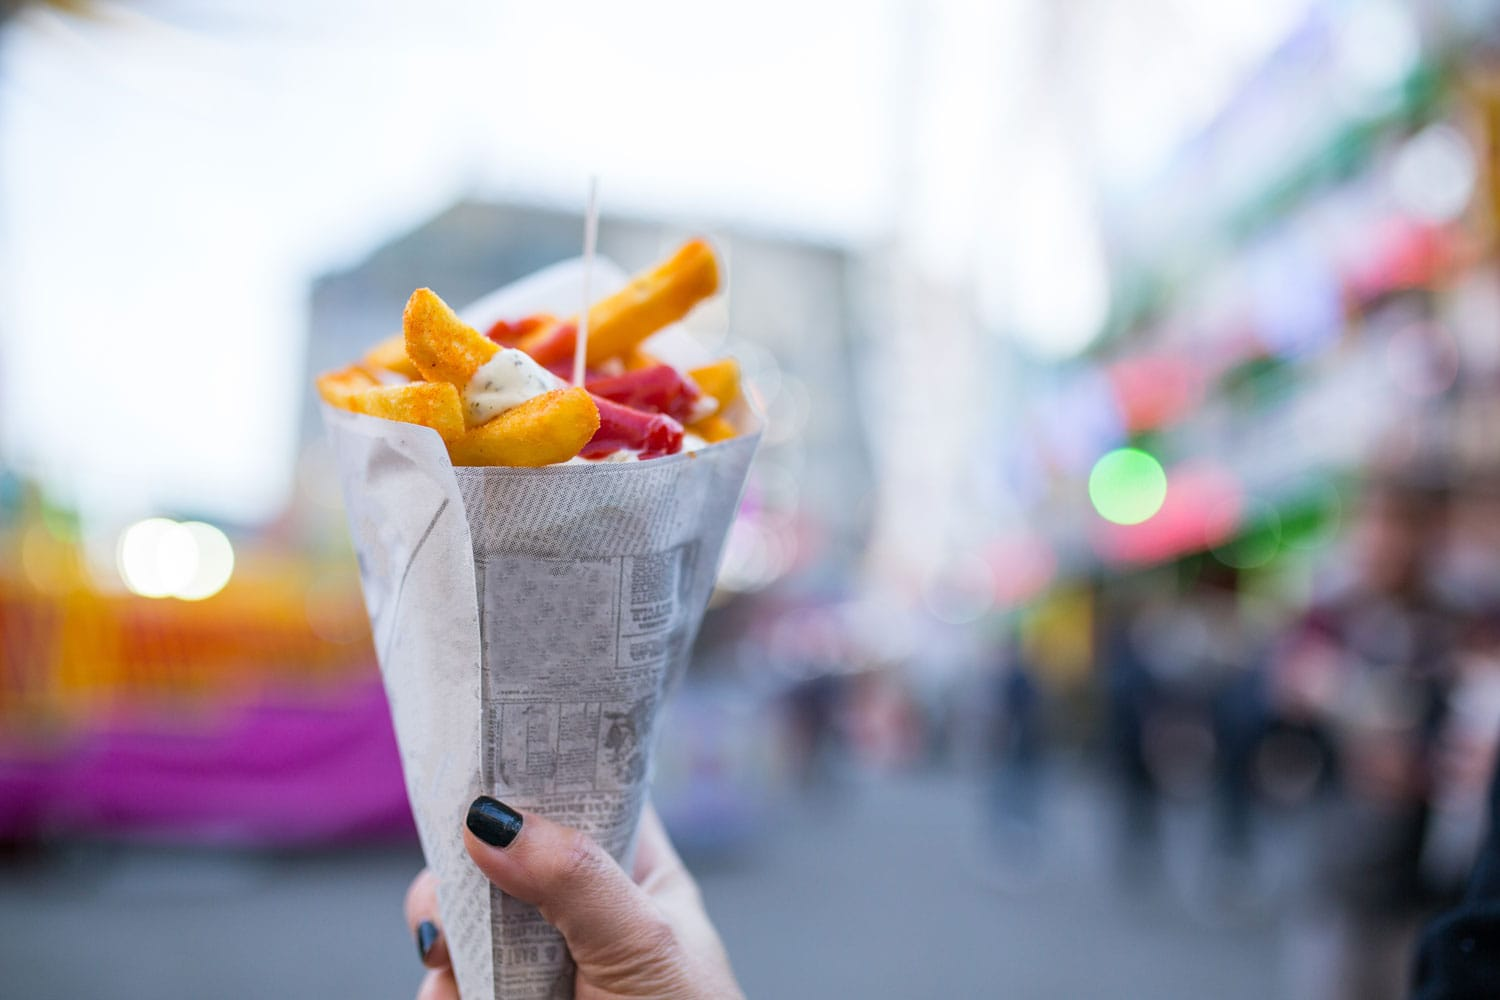 French fries food desert for eating on the street in Amsterdam, Netherland